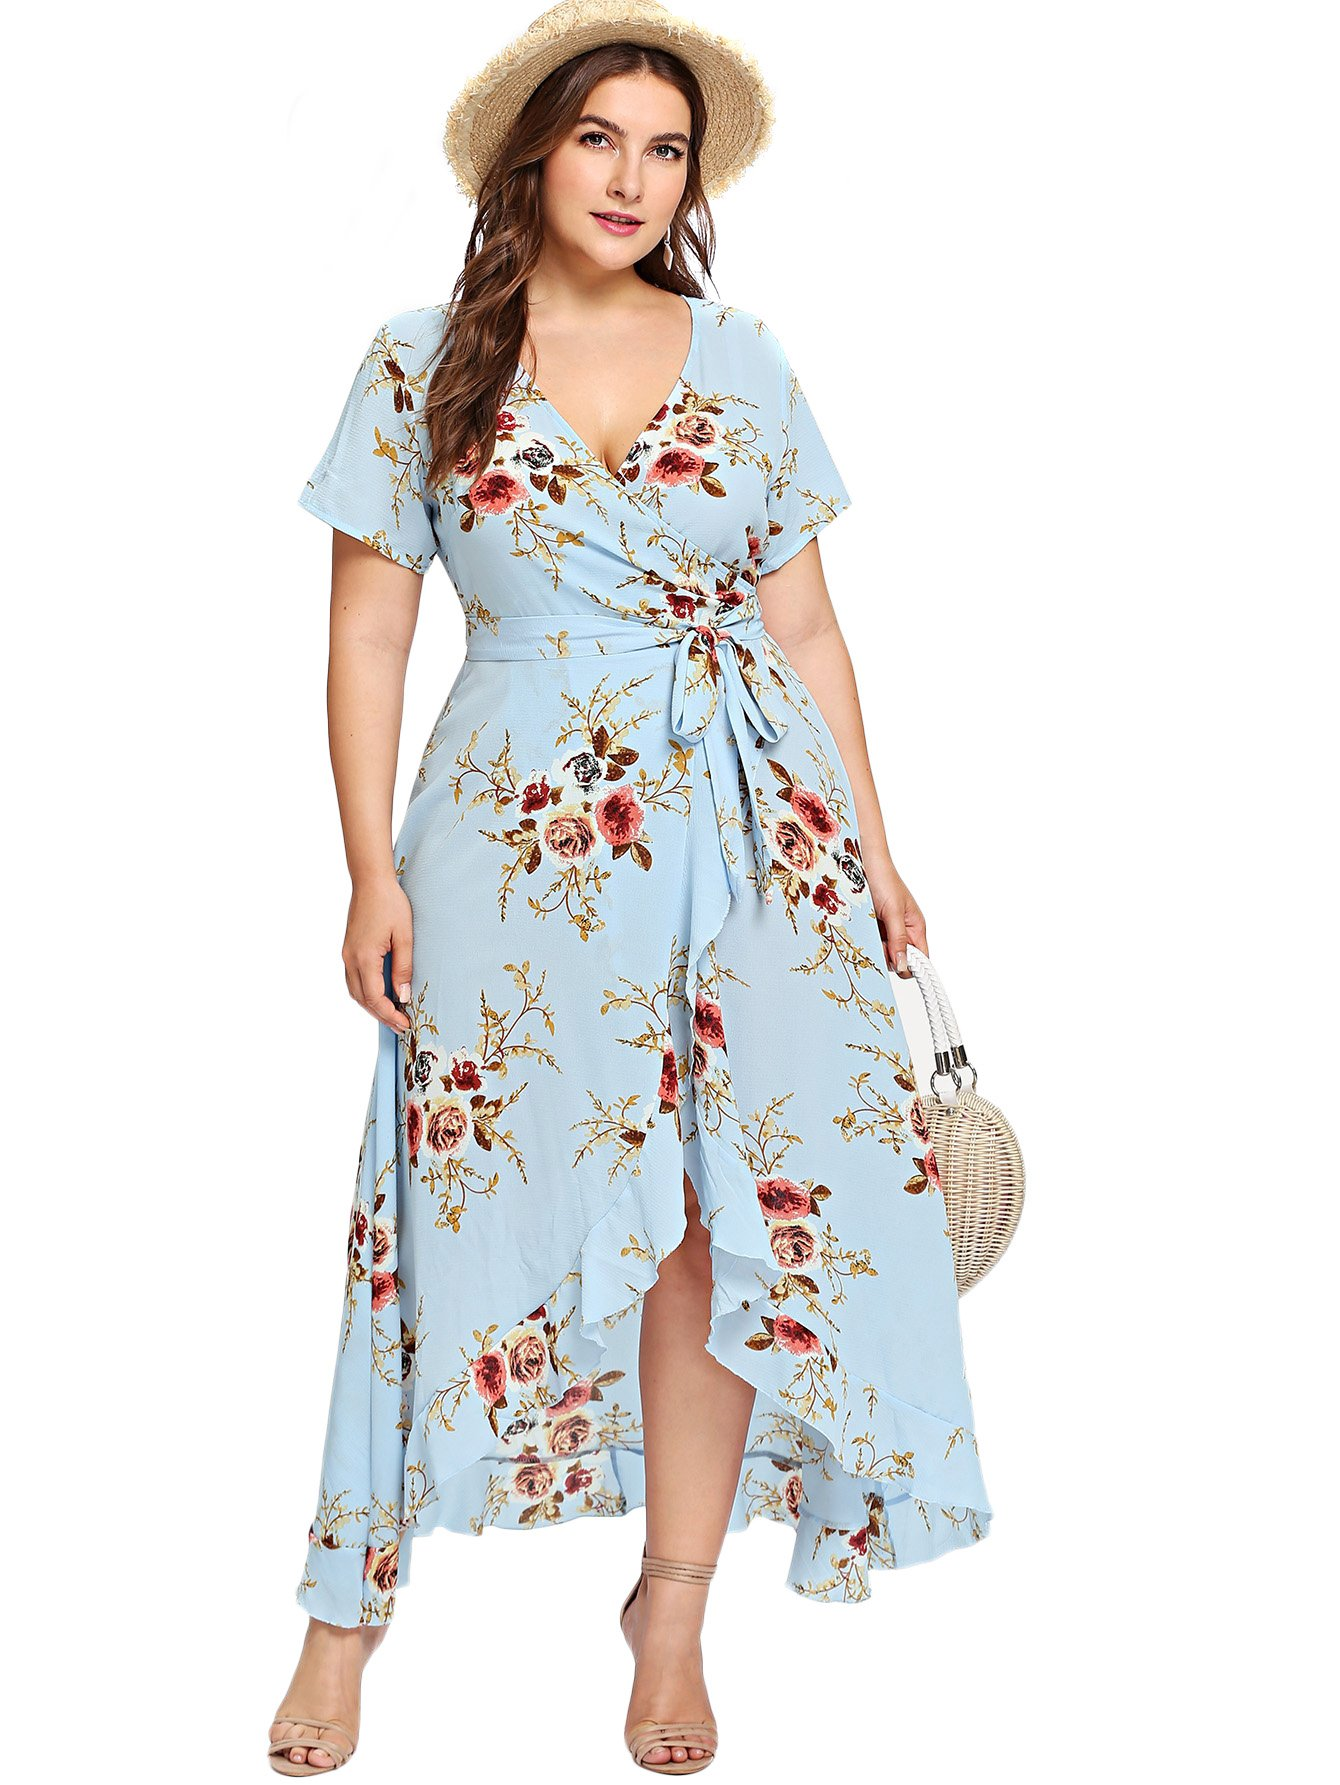 Milumia Plus Size Short Sleeves Wrap V Neck Belted Empire Waist Asymmetrical High Low Bohemian Party Maxi Dress Blue 3XL by Milumia